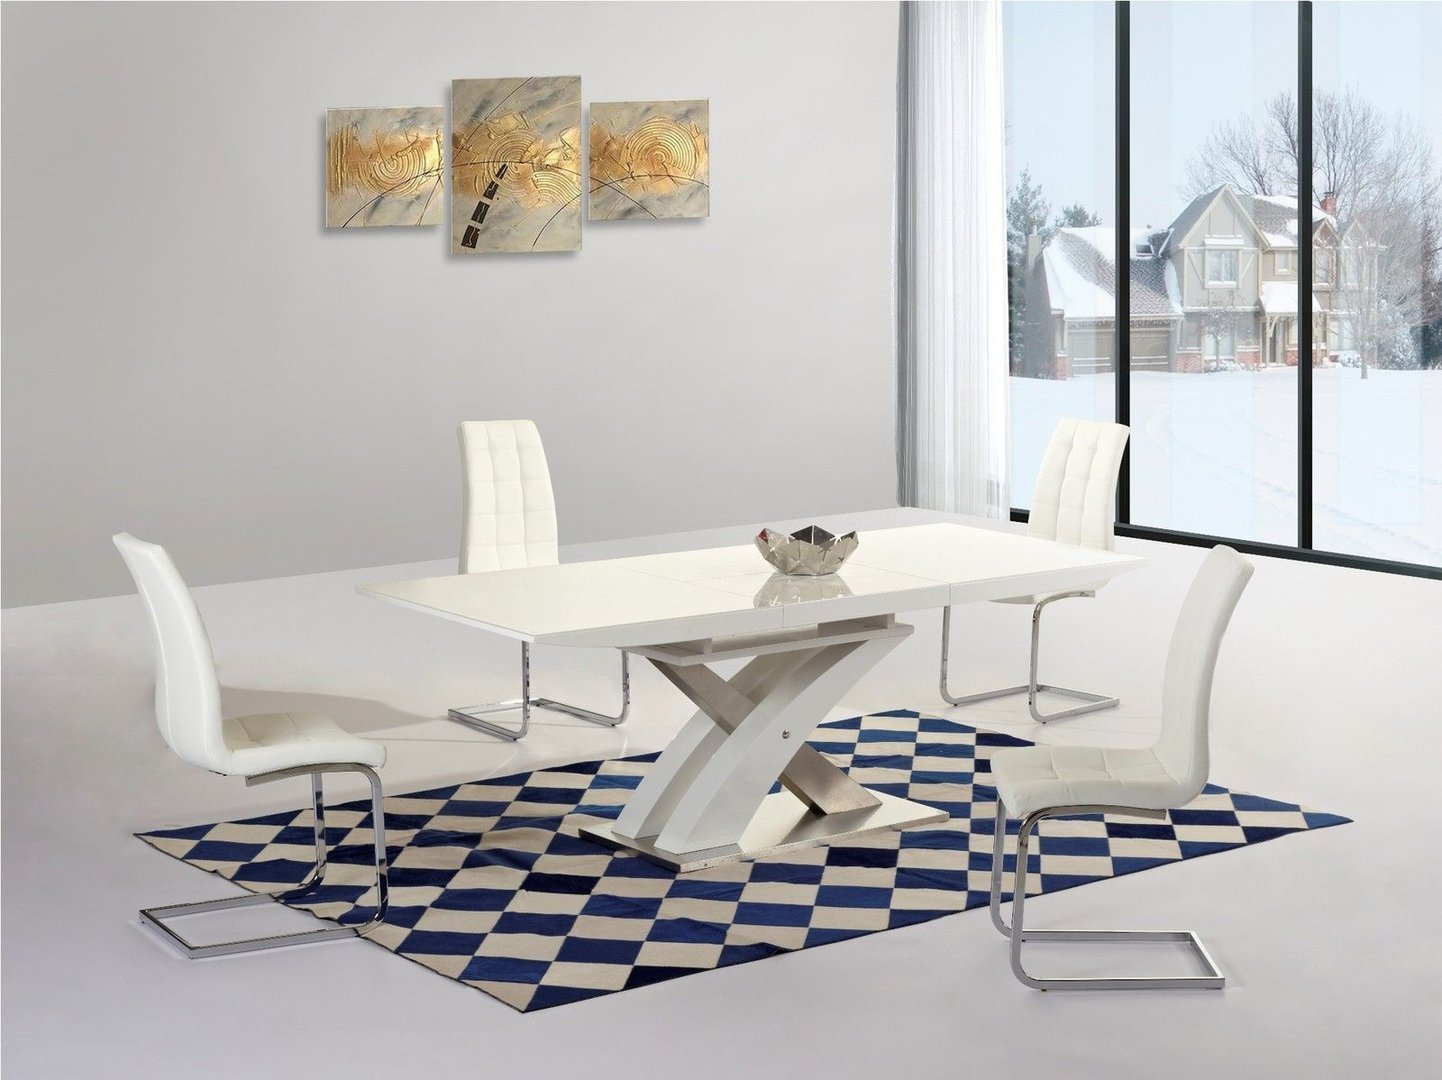 ... White high gloss and glass extending dining table and 8 white chairs set & White high gloss and glass extending dining table u0026 8 chairs